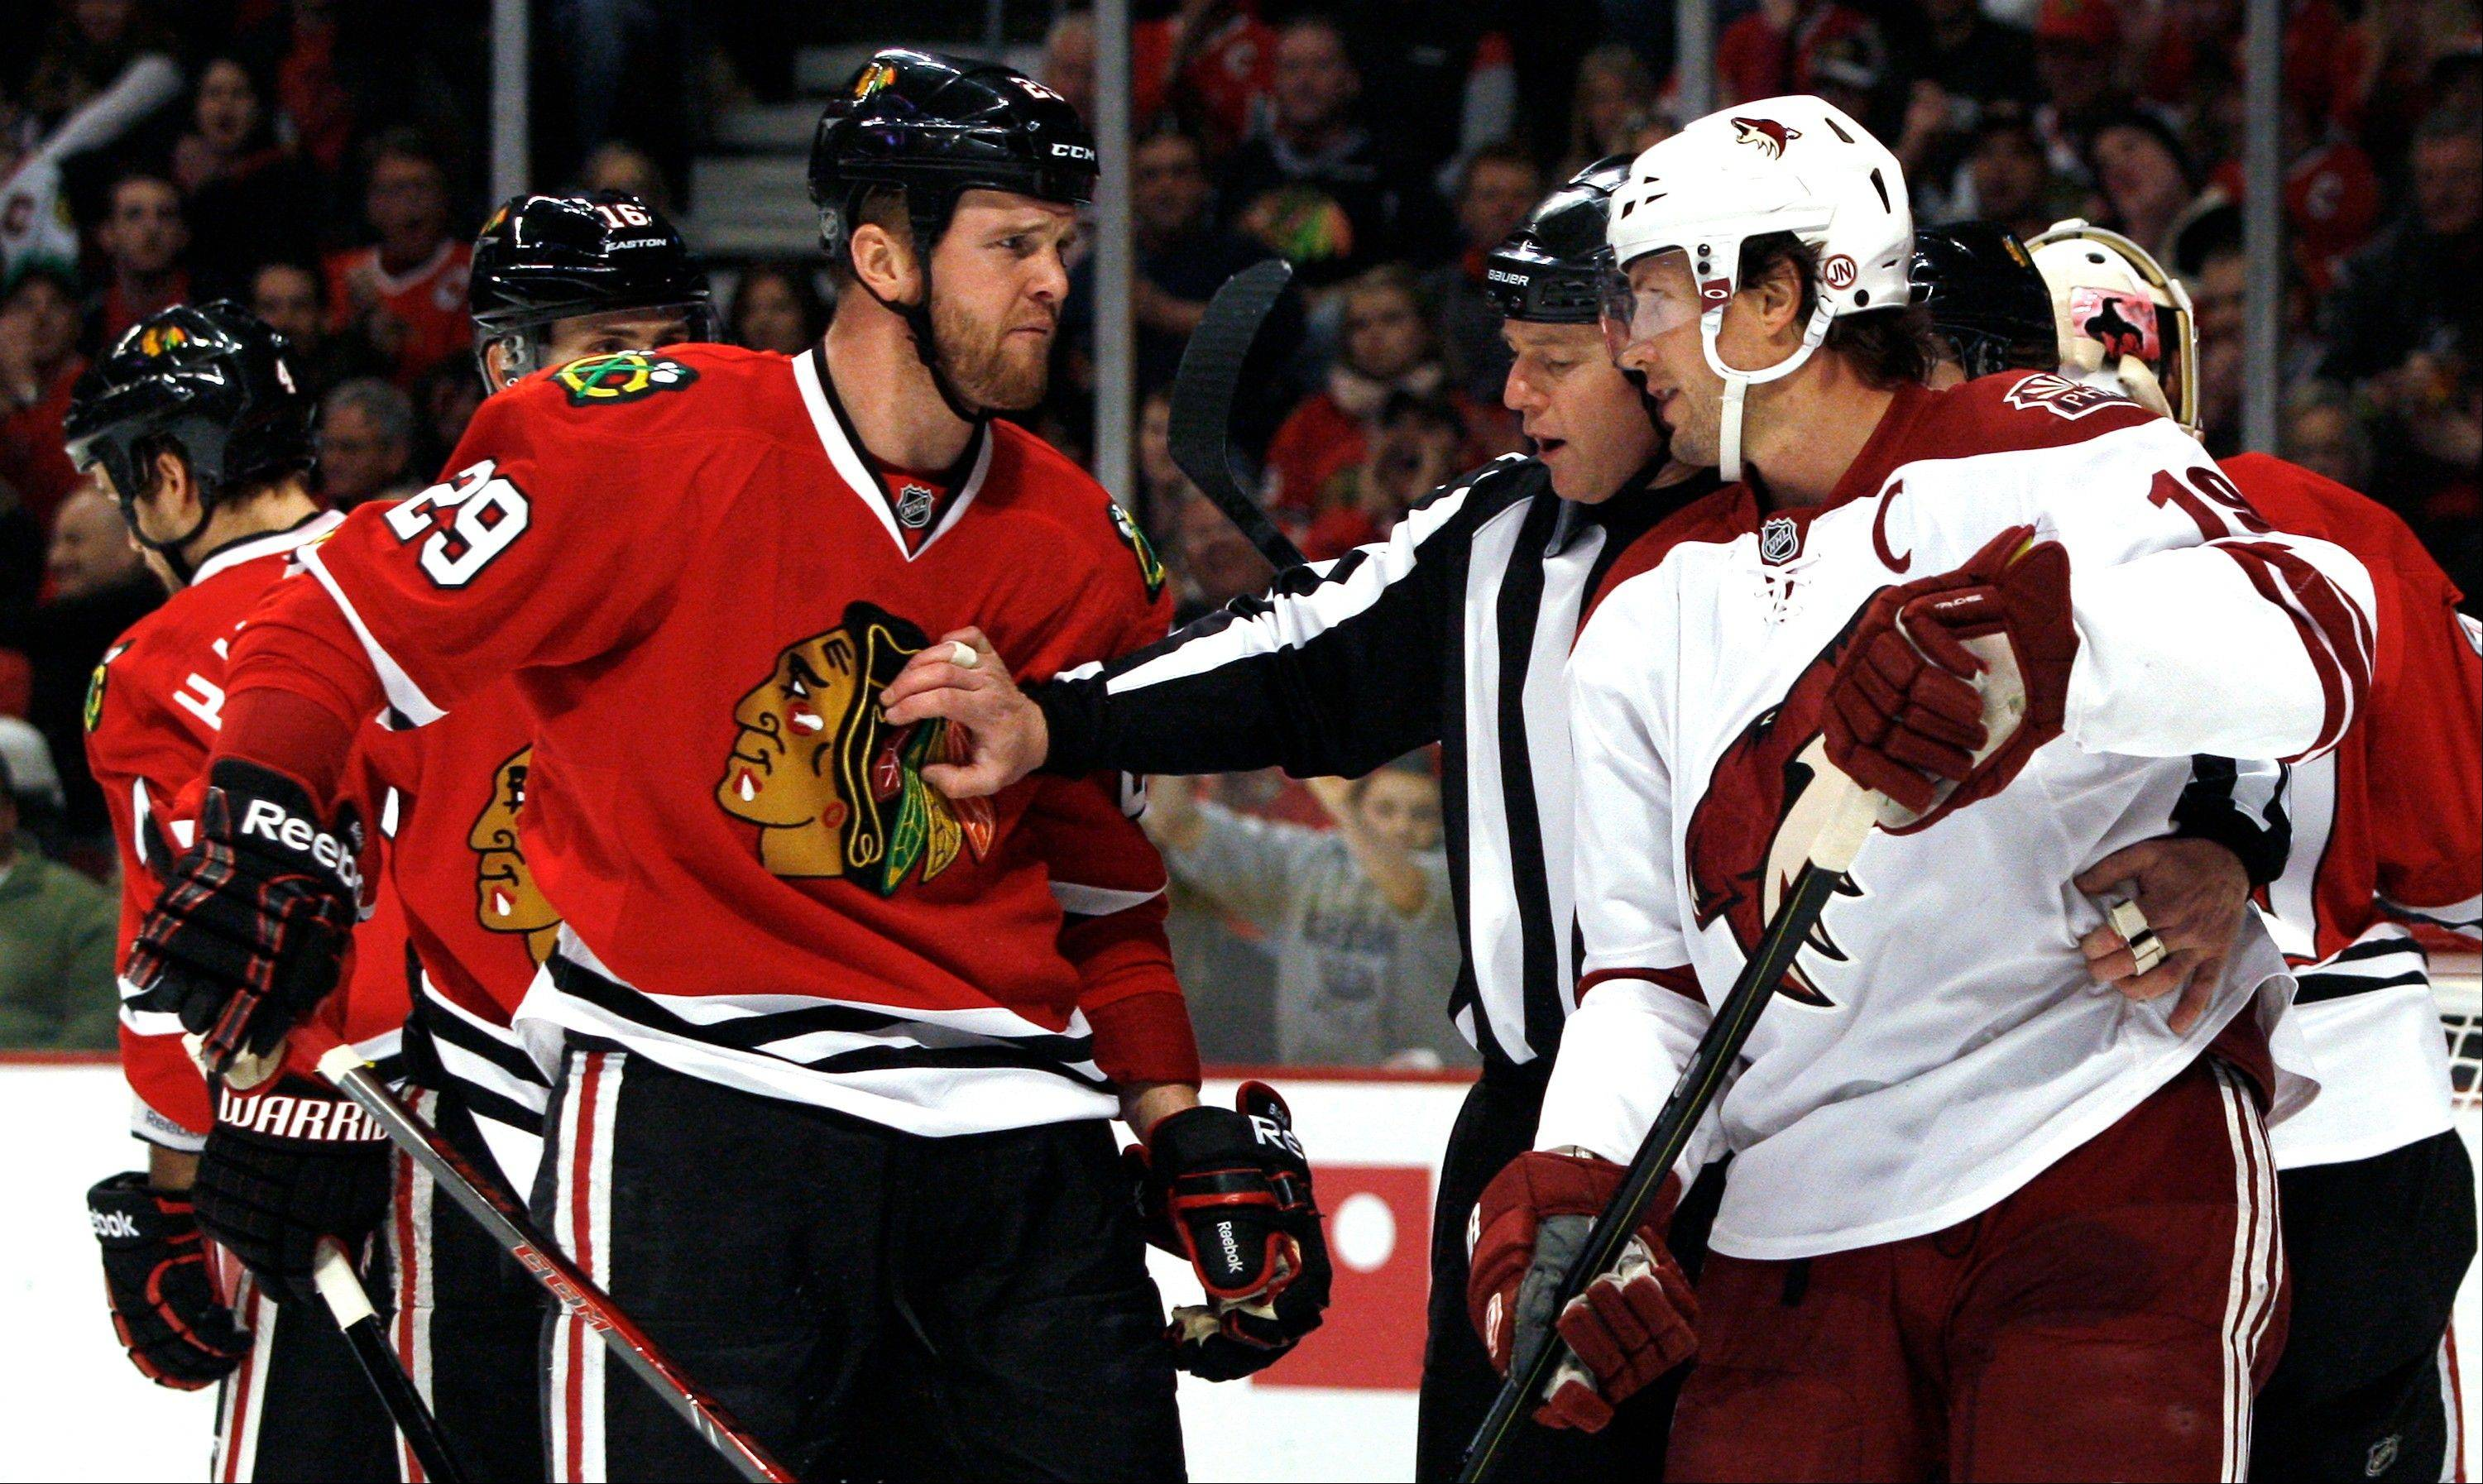 An official separates the Blackhawks� Bryan Bickell, left, and Phoenix Coyotes� Shane Doan during the first period of Saturday�s game in Chicago.